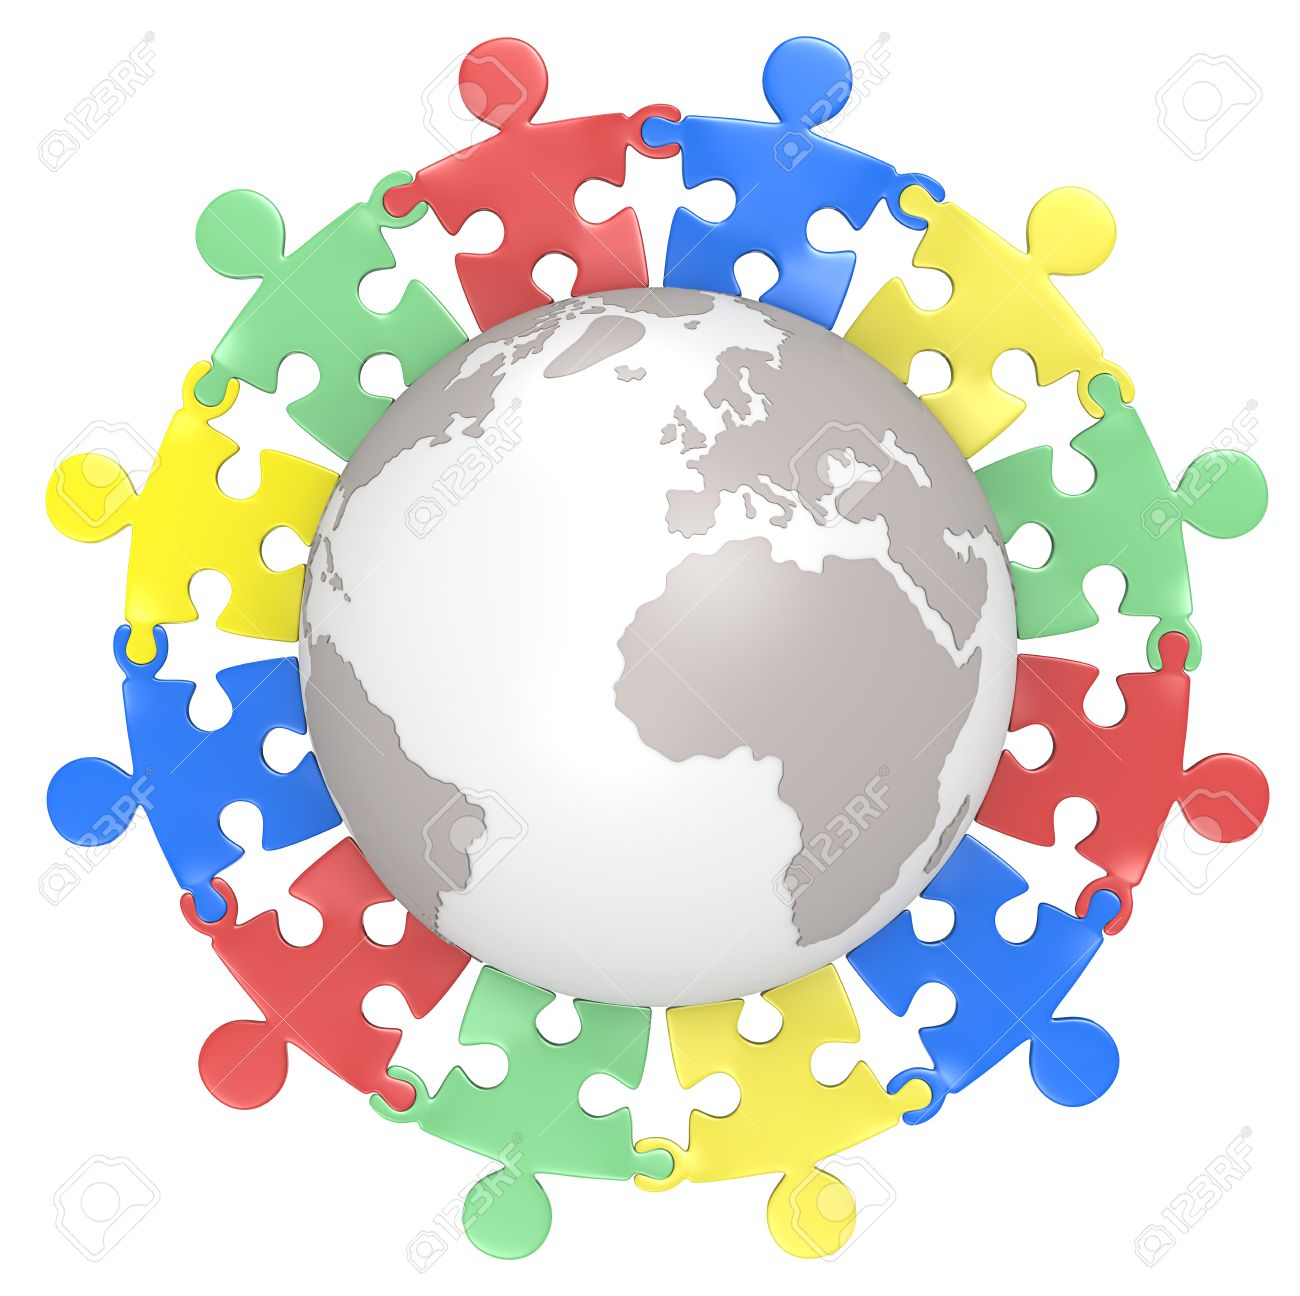 Multicultural  Puzzle people holding hands around the Globe  Color Version  Isolated Stock Photo - 20461785